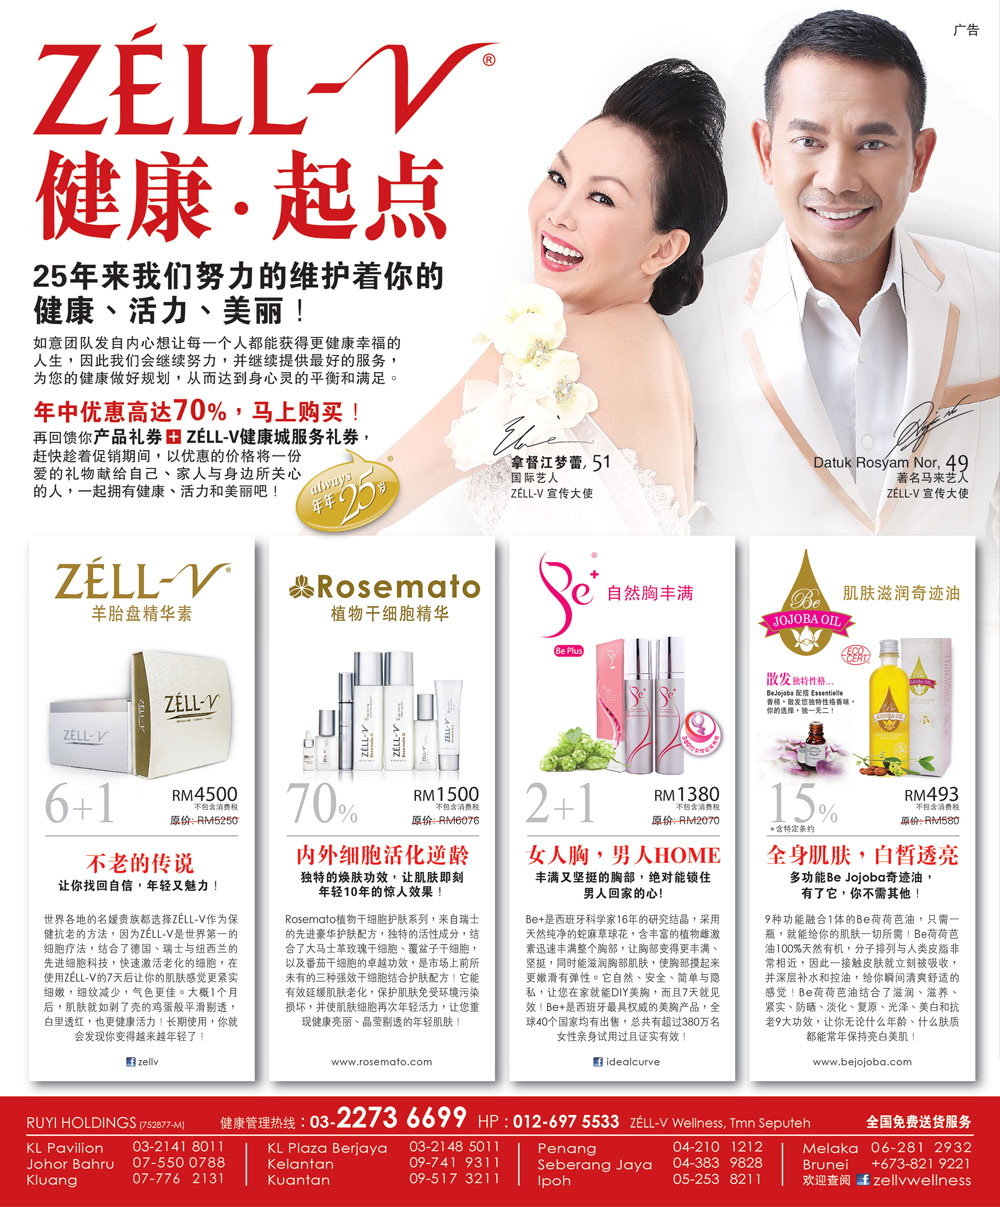 ZÉLL-V Offer @ Sin Chew (Jun' 16)